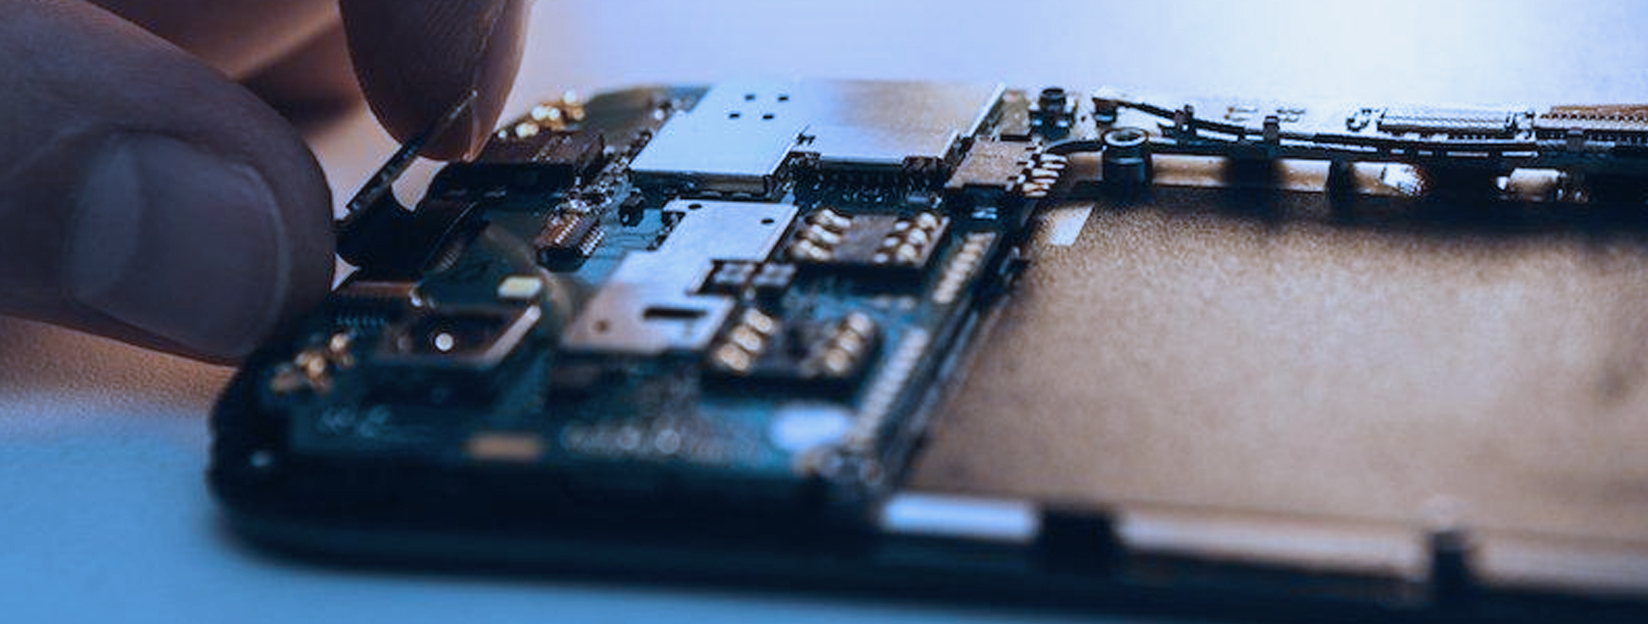 Samsung Warns of Deepening Chip Shortage